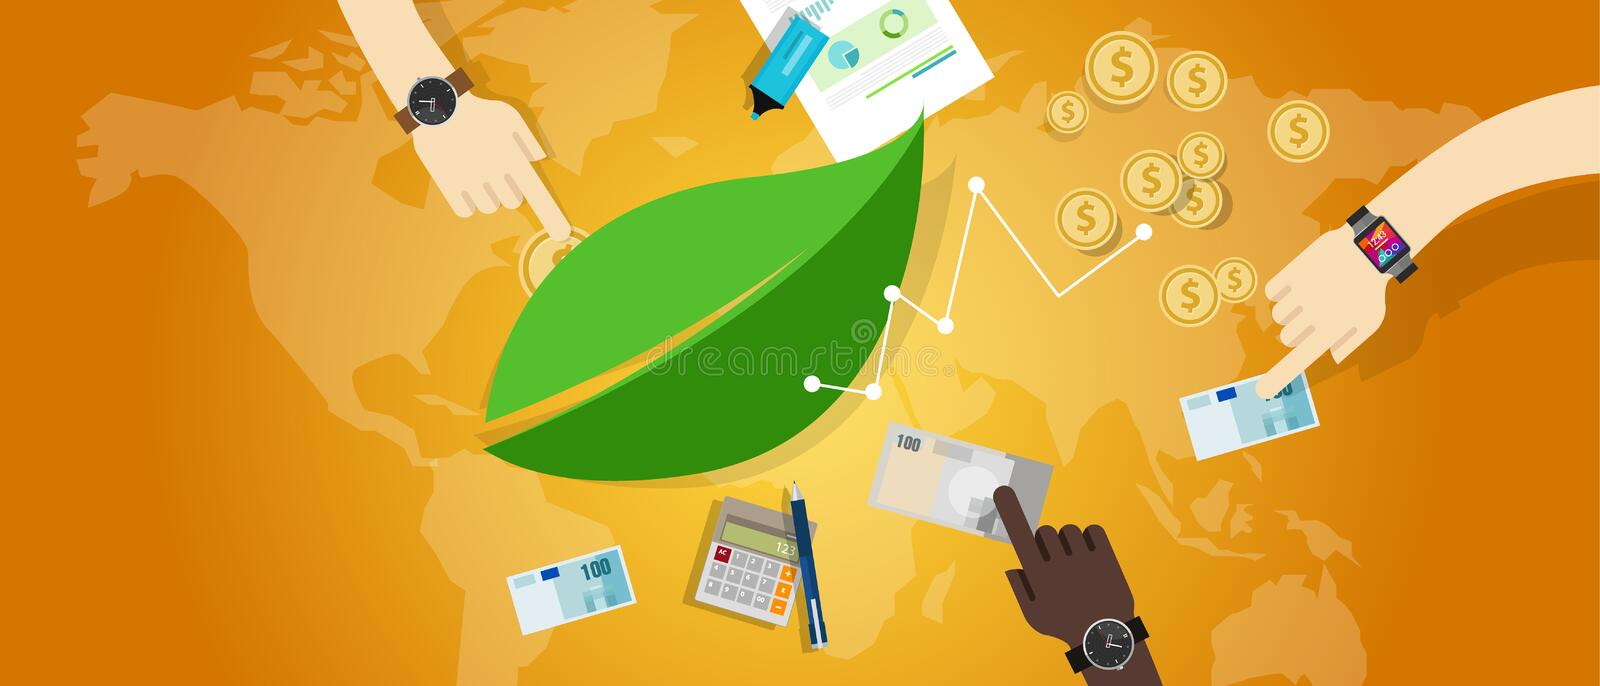 Sustainable business eco freindly corporate responsibility csr royalty free illustration